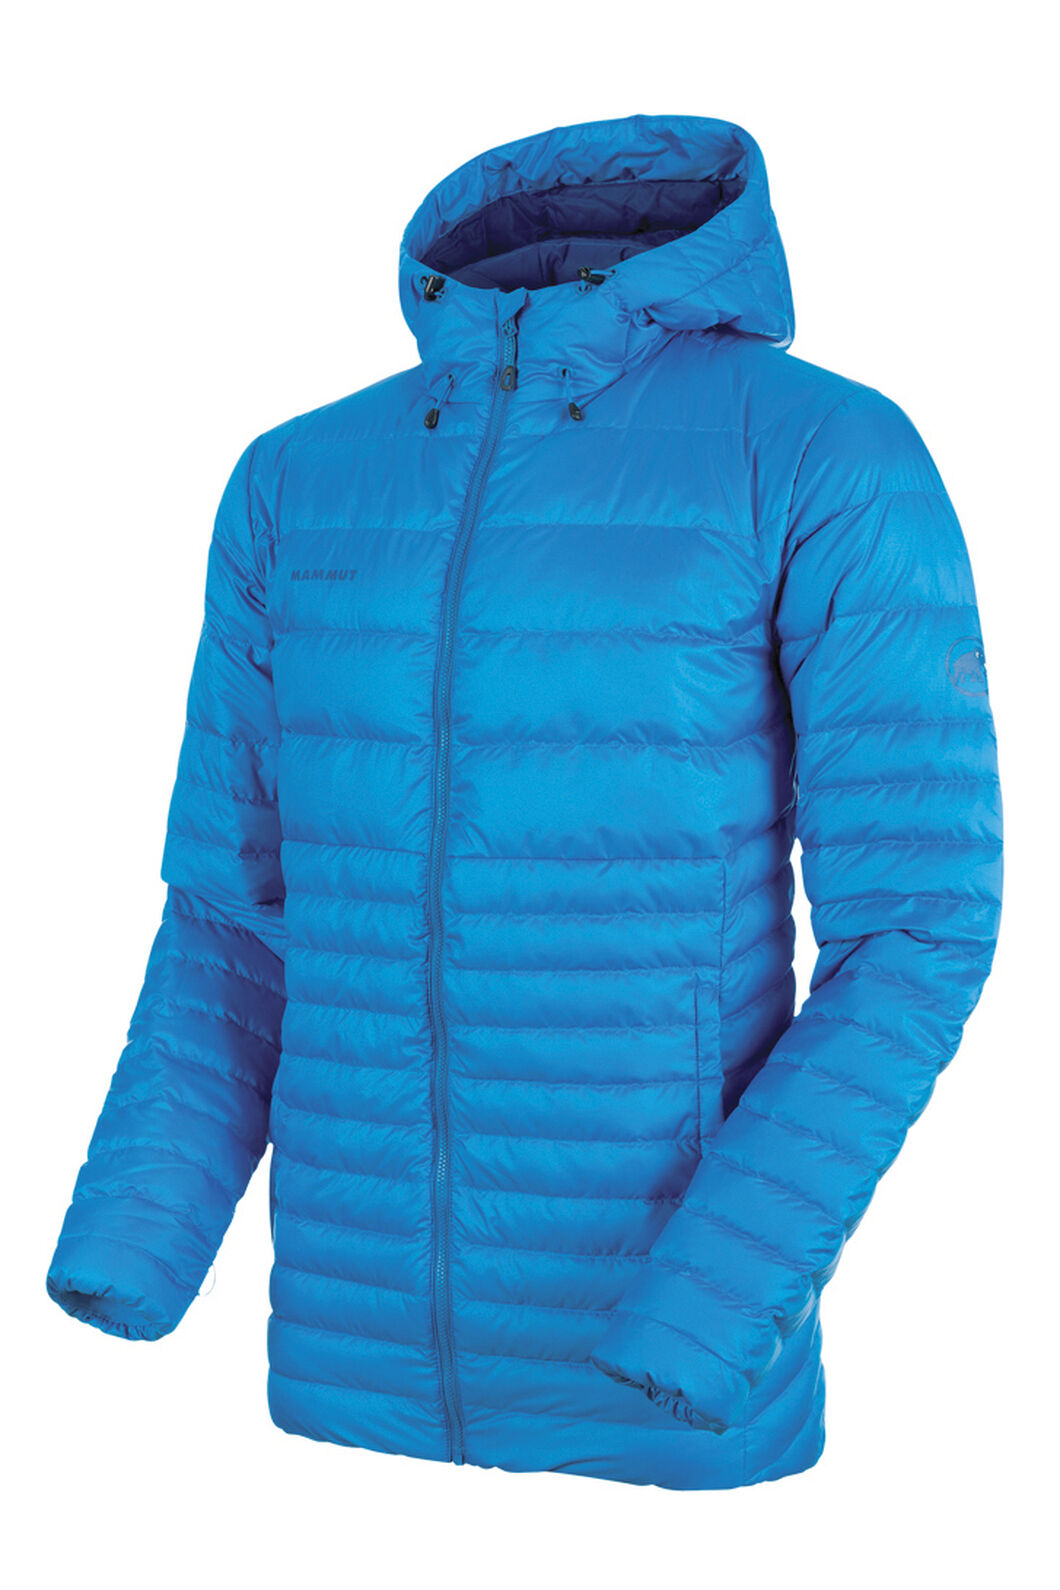 Mammut Convey Insulated Hooded Jacket - Men's, Imperial Blue, hi-res